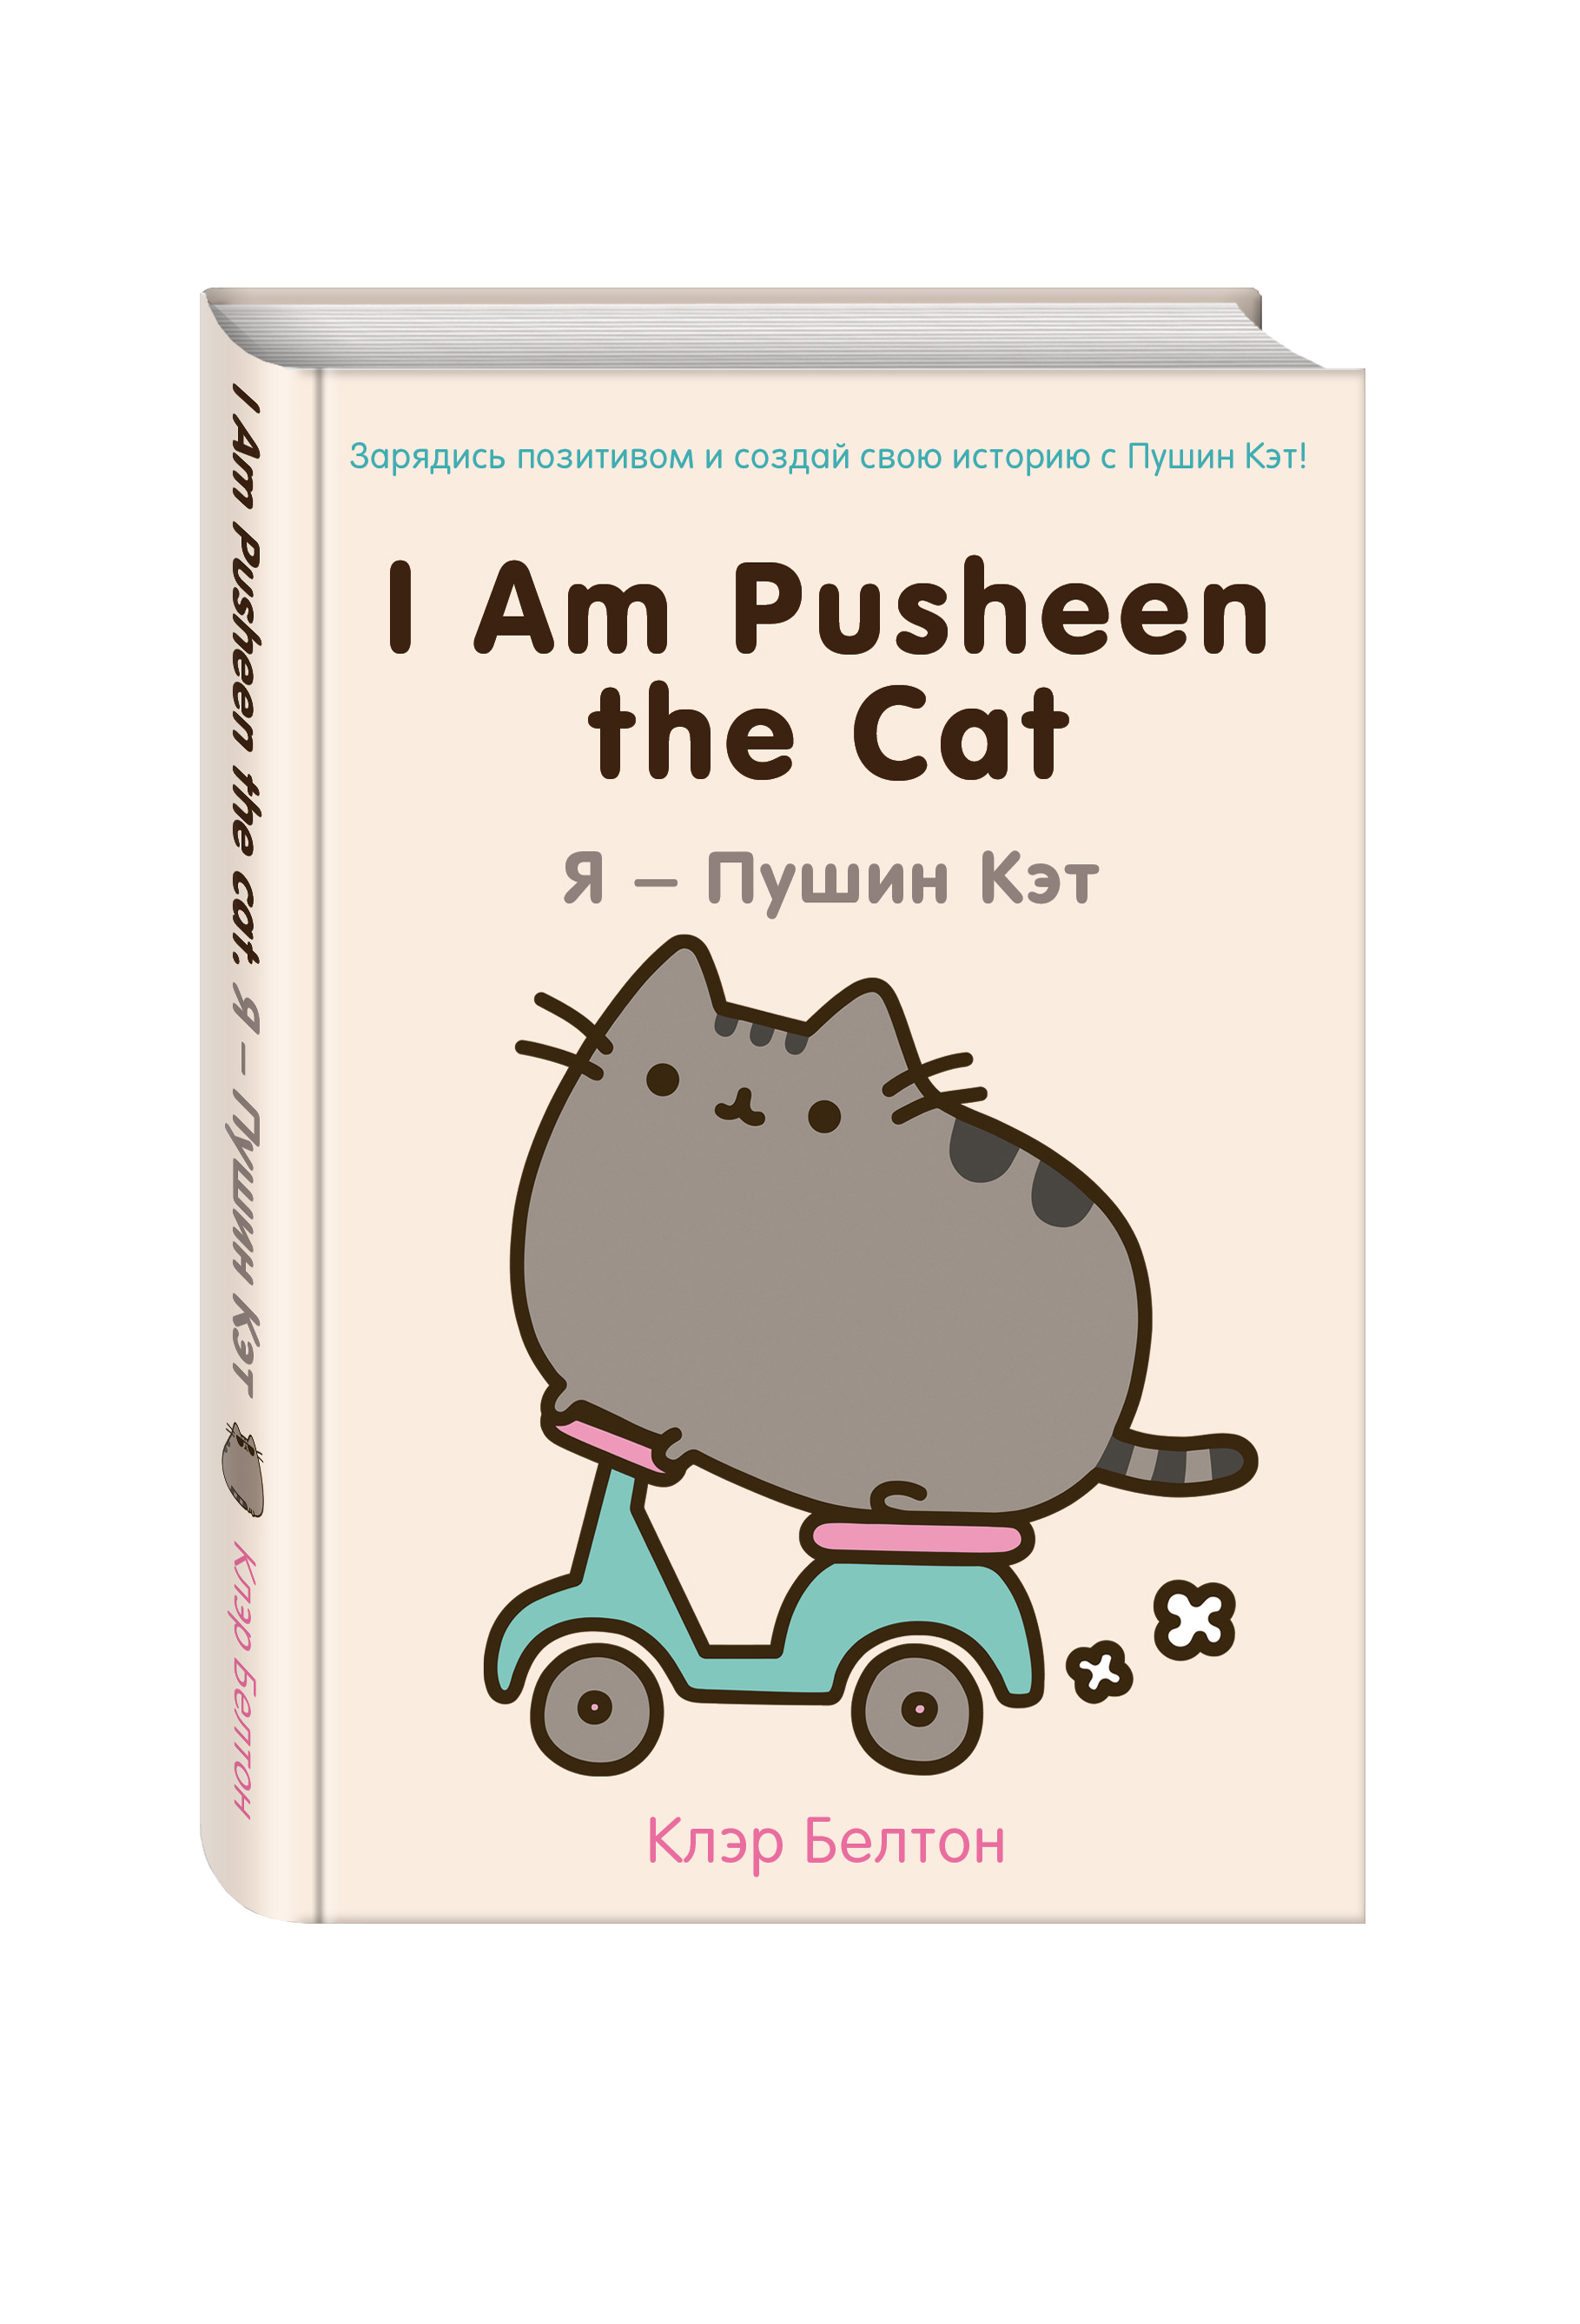 Клэр Белтон I Am Pusheen the Cat. Я - Пушин Кэт 7 colors 40 30cm plush toy stuffed animal doll anime toy pusheen cat pusheen skin girl kid kawaii cute cushion brinquedos kids